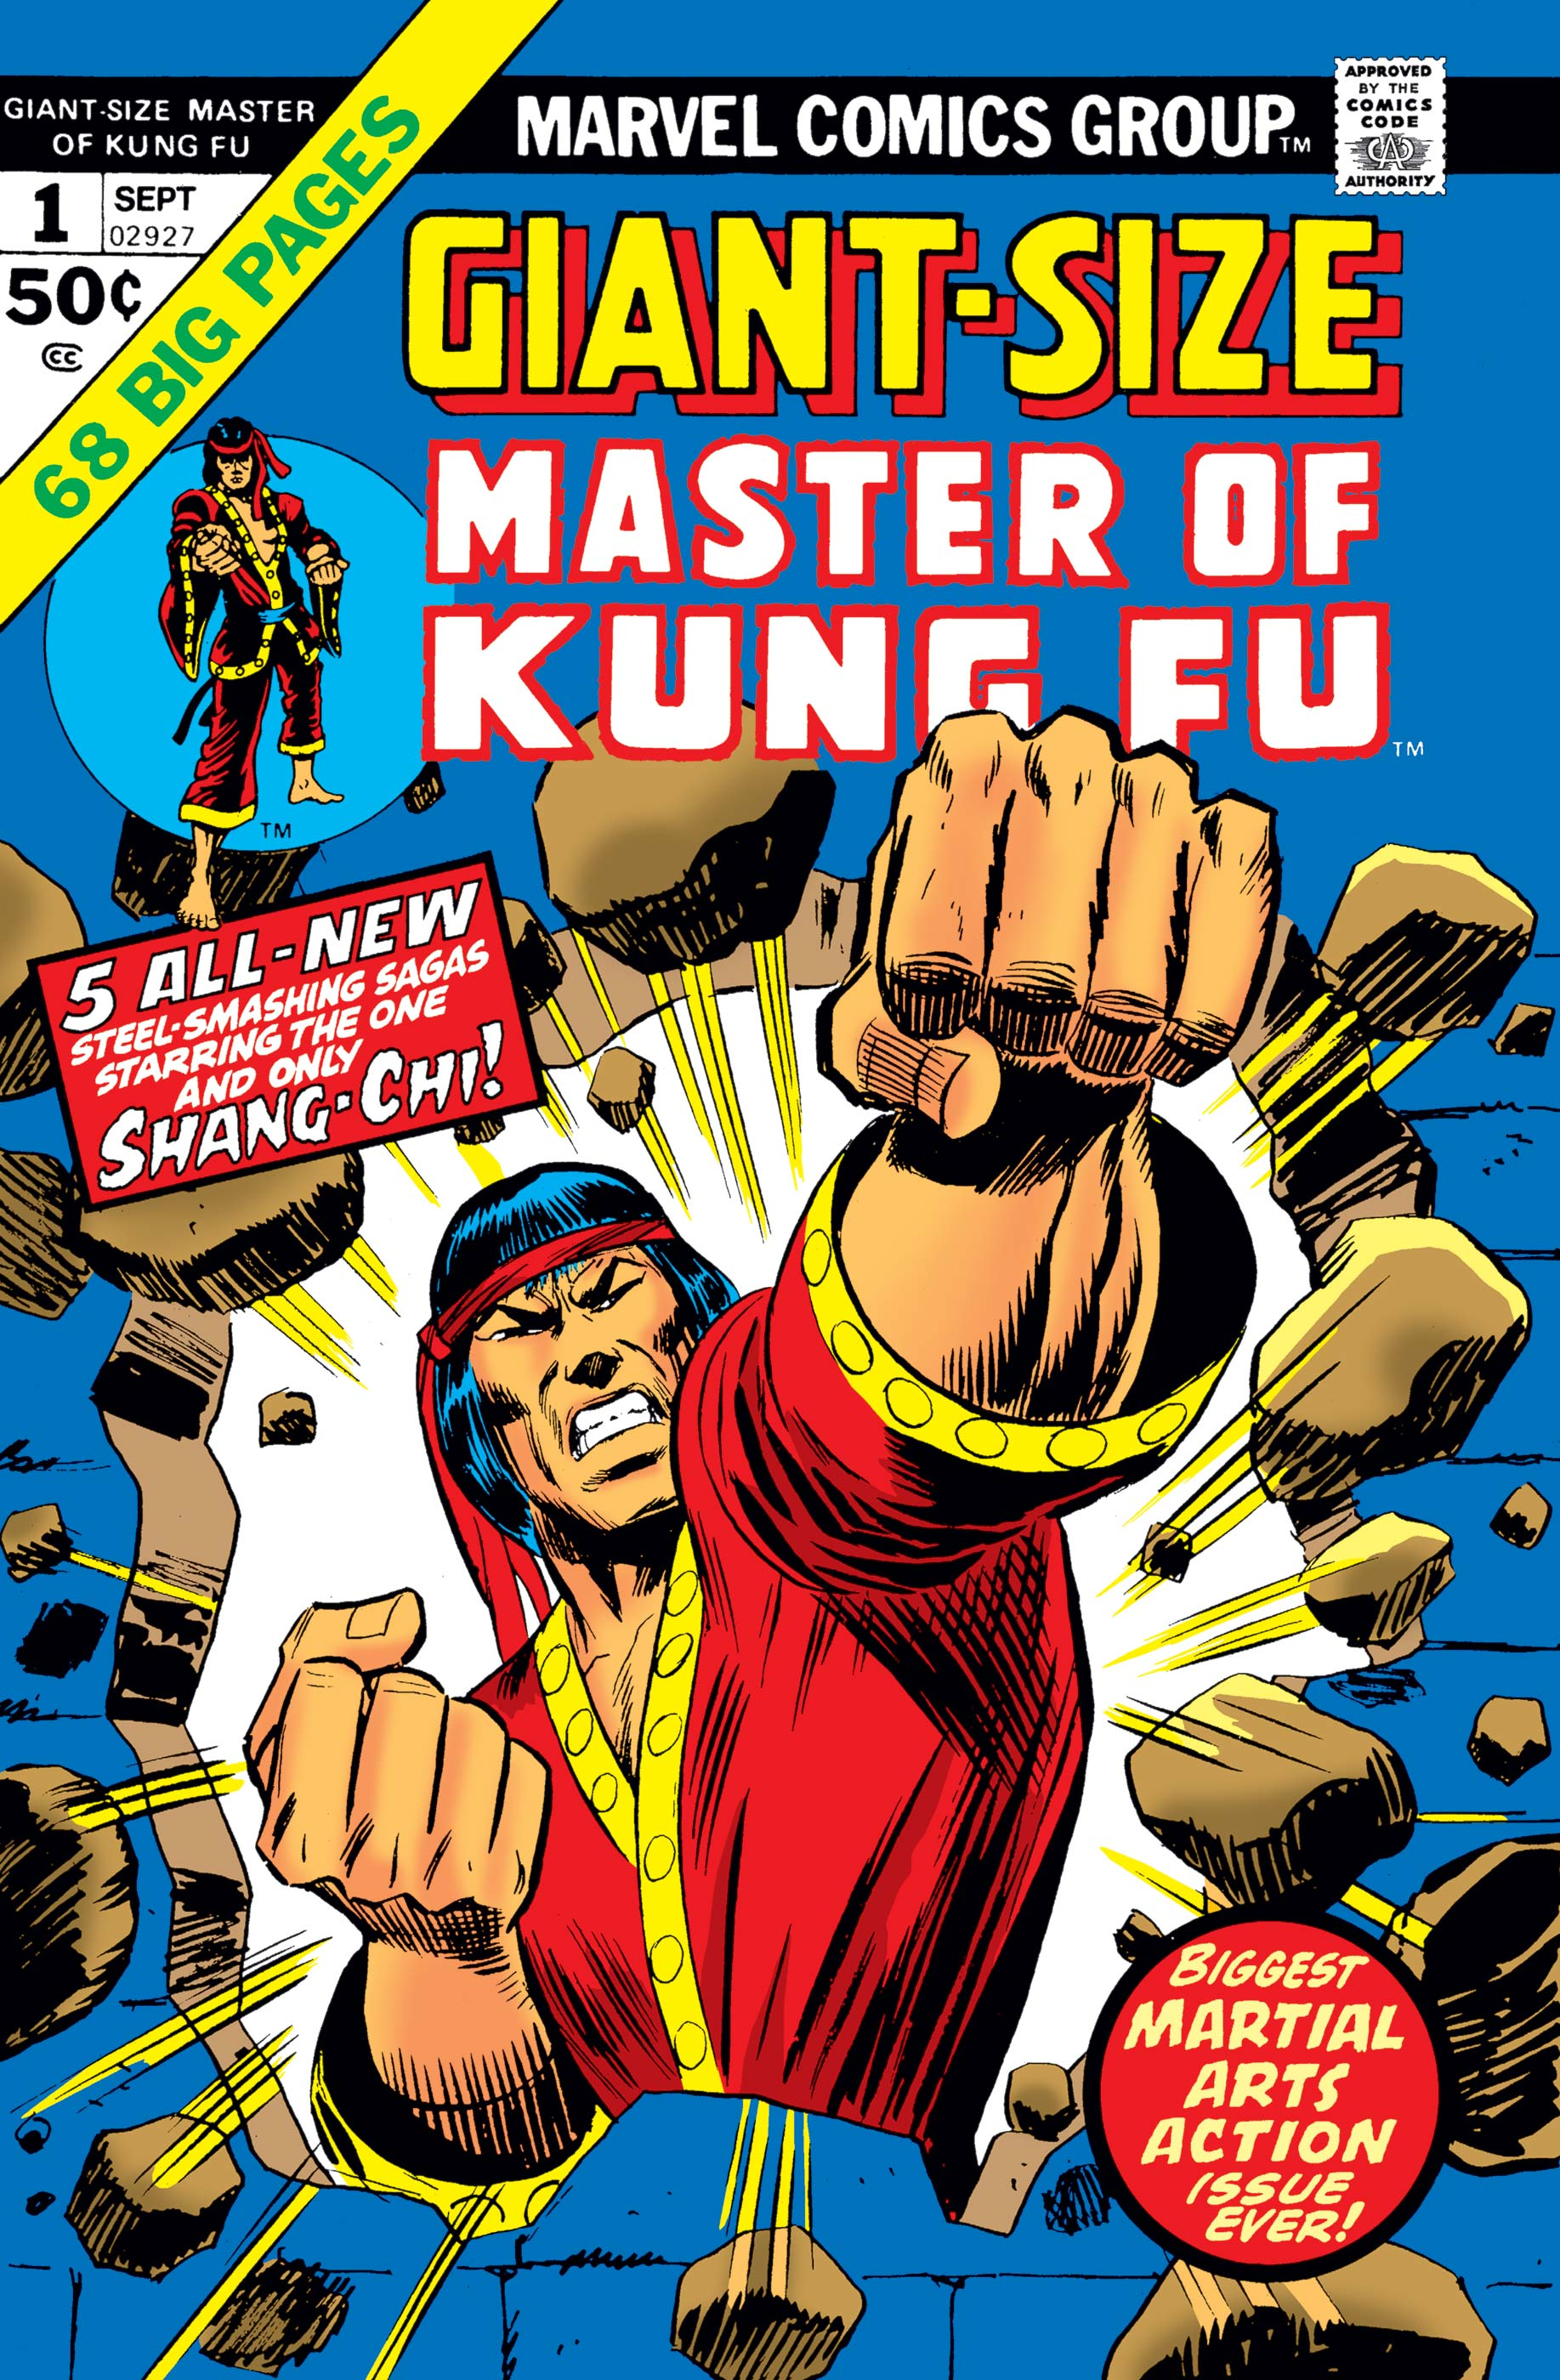 Giant-Size Master of Kung Fu (1974) #1